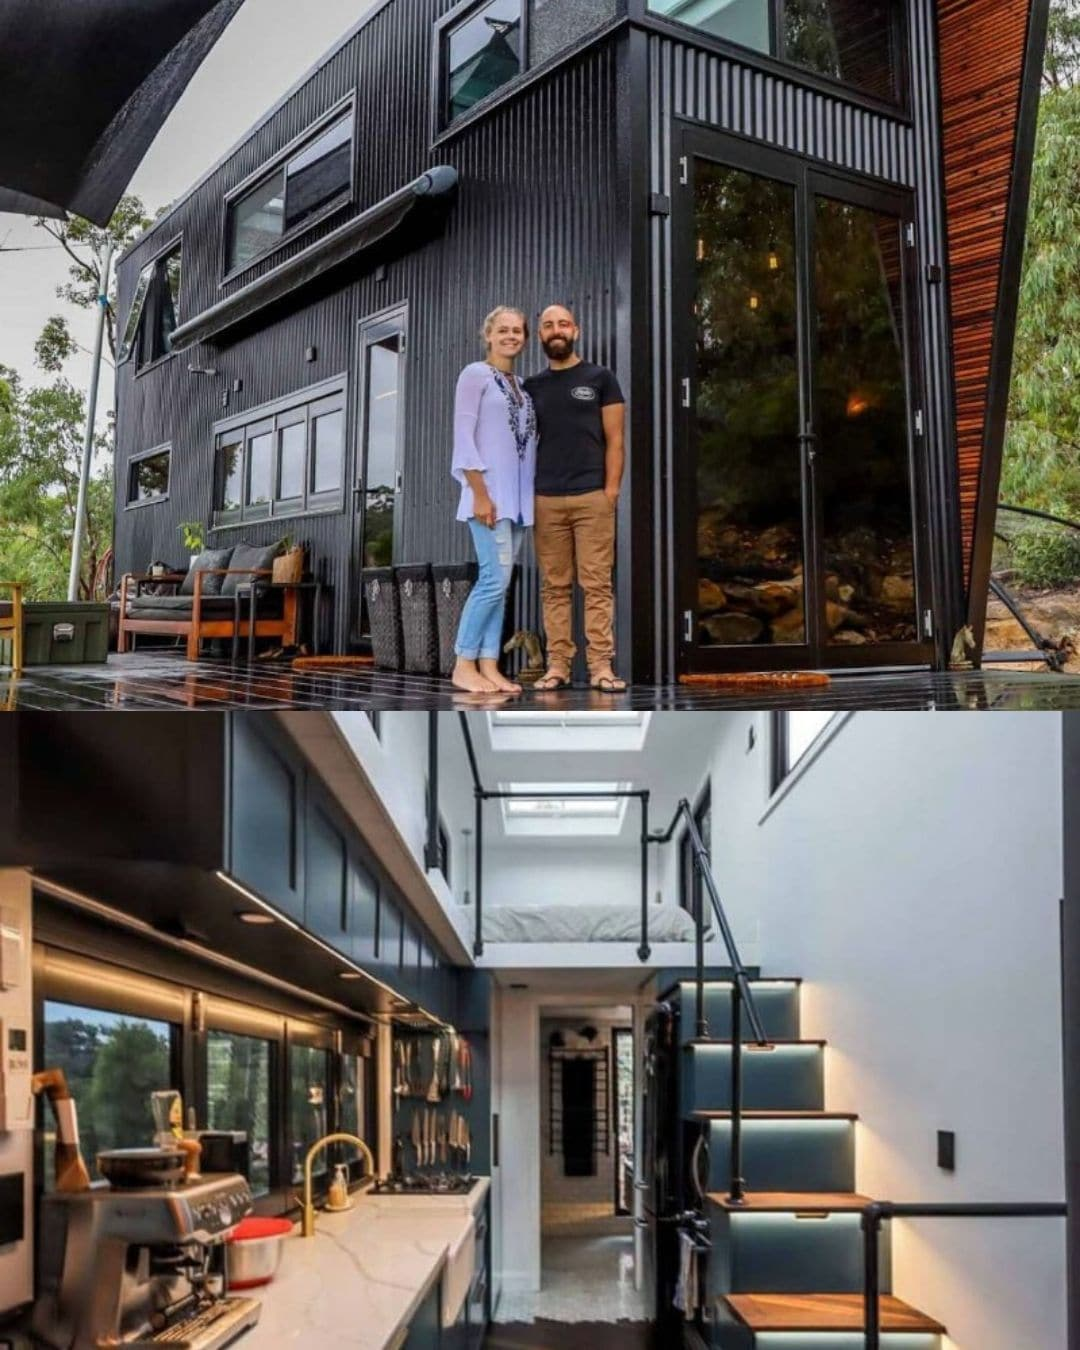 The Blue Mountains Luxury Tiny House